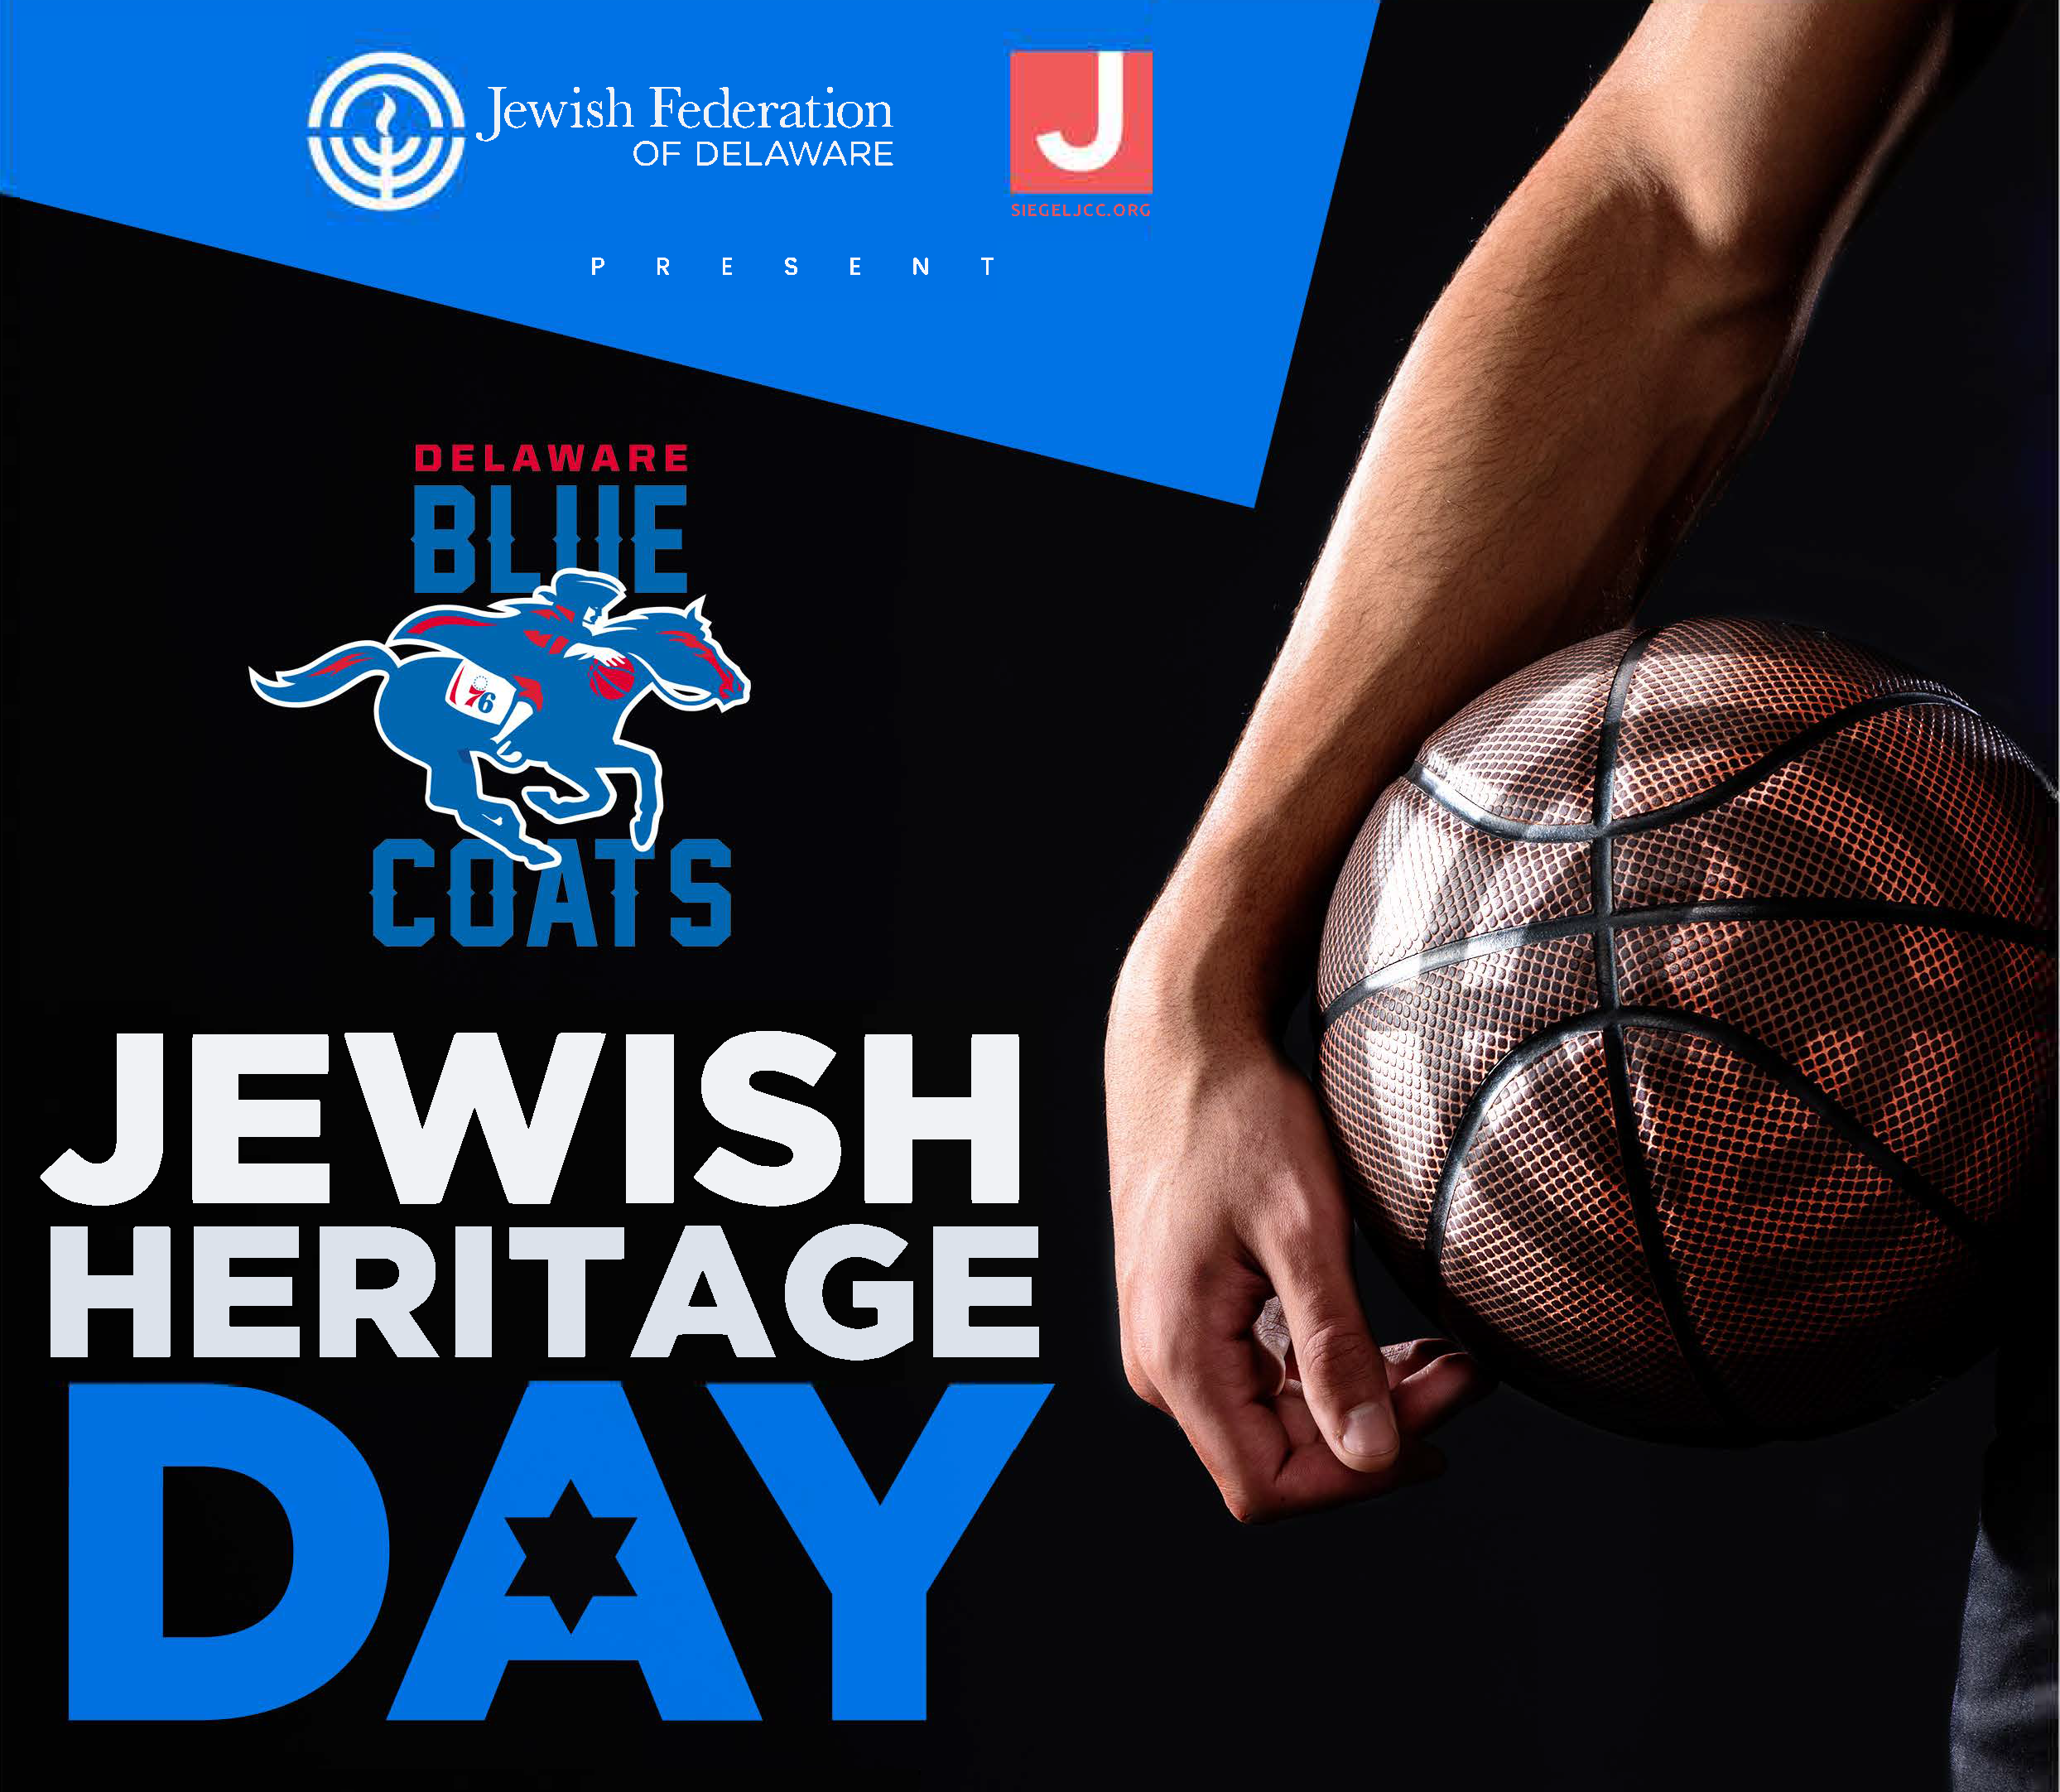 Jewish Heritage Day at the Delaware Blue Coats